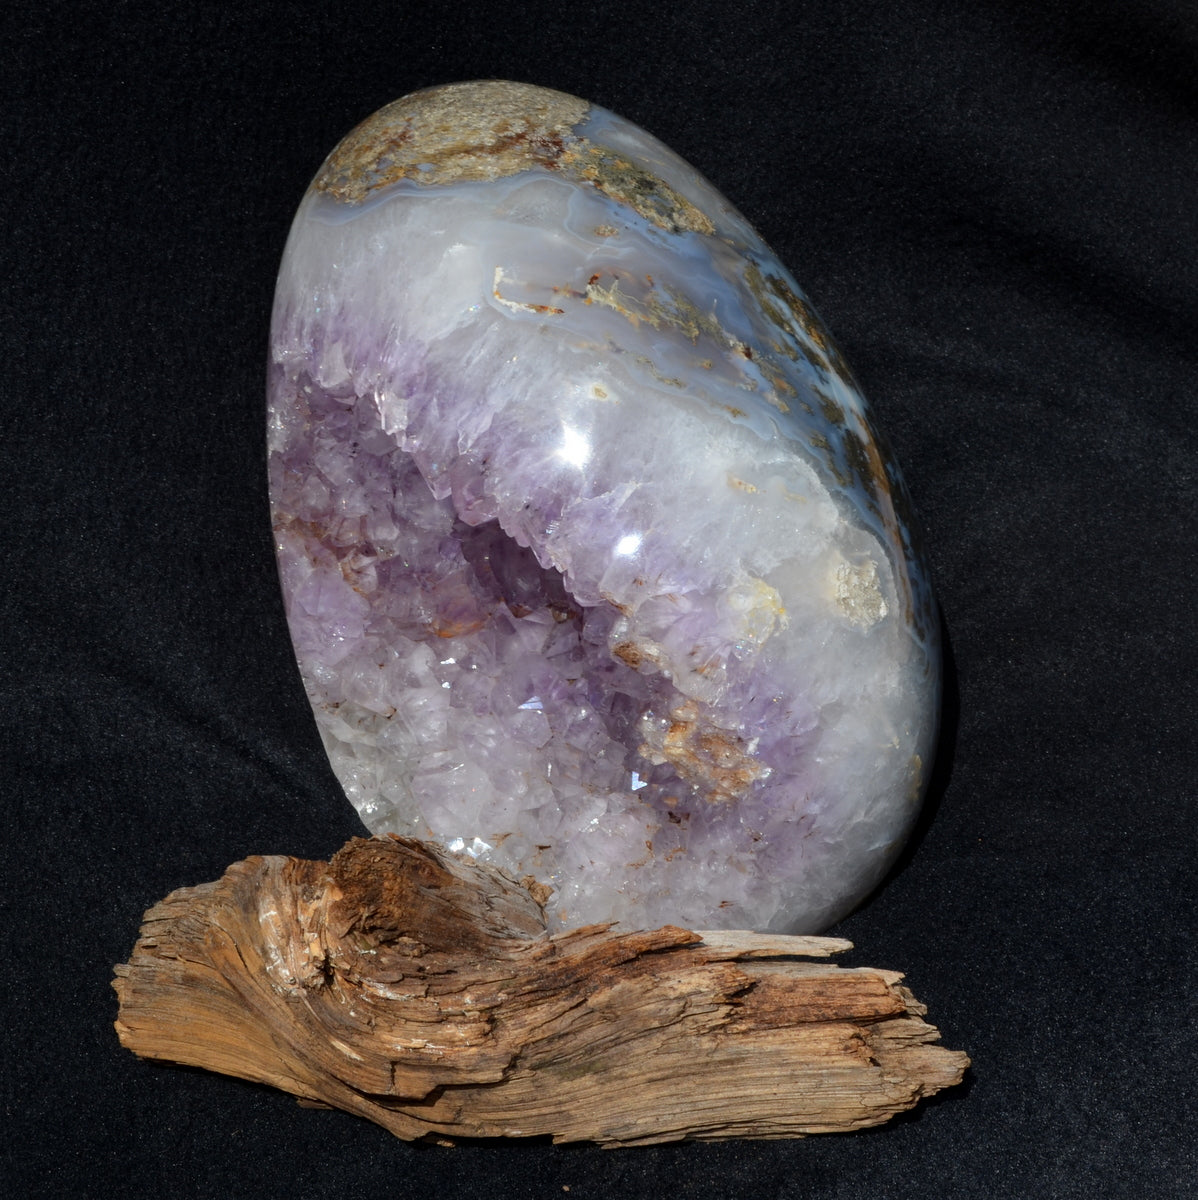 Stunning Amethyst Geode XXXL Gemstone Egg - Shop this amazing piece now at Illiom Crystals - We have Afterpay!